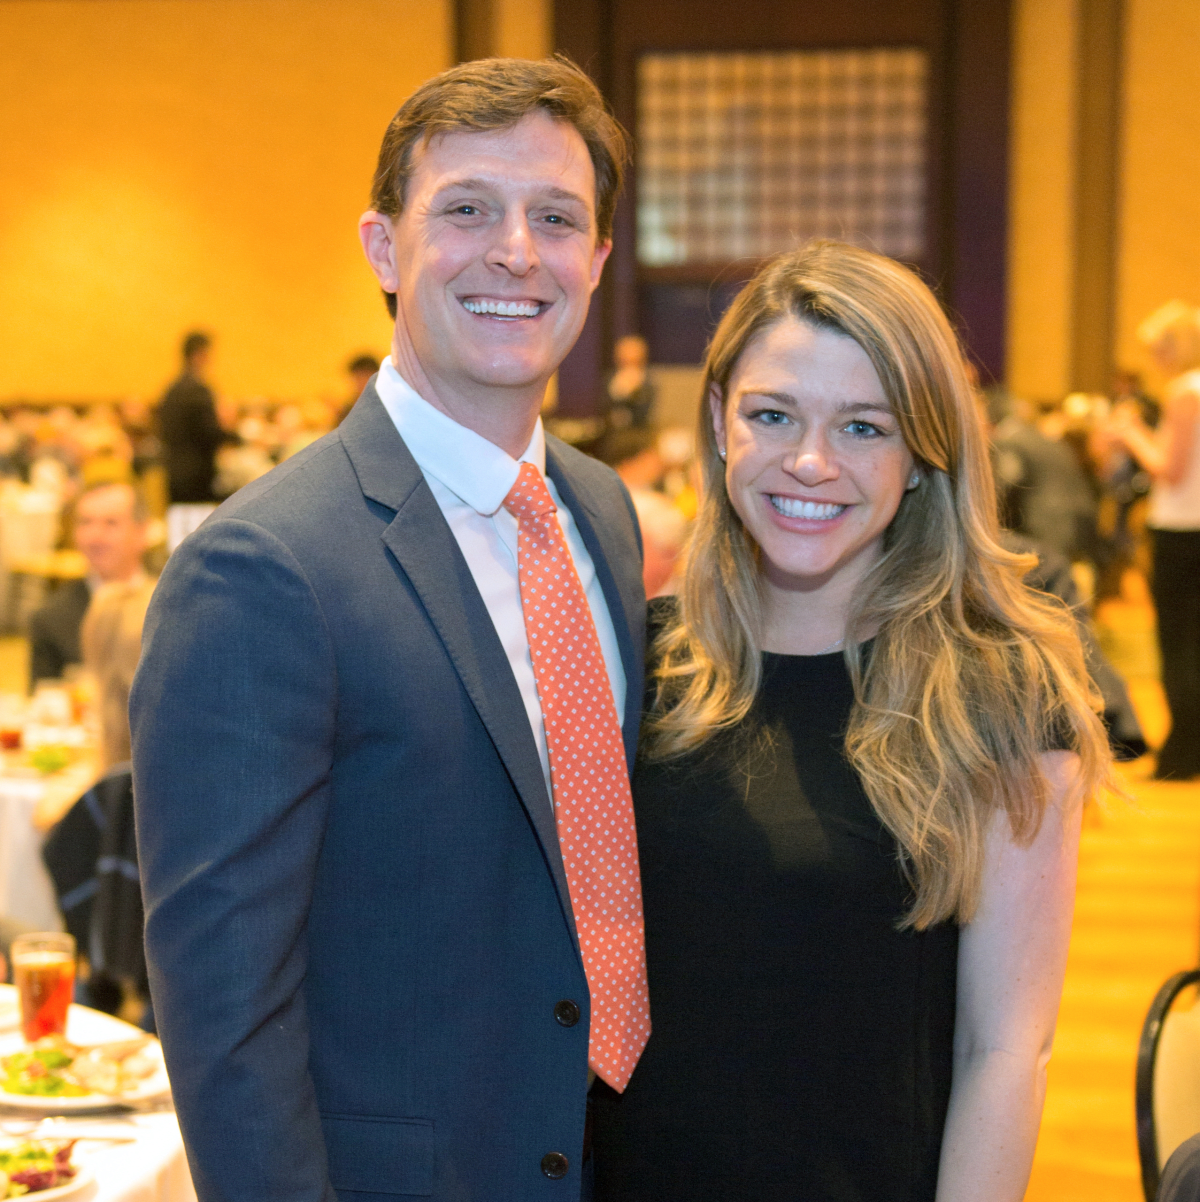 Houston, University of Texas at Austin Guardian of the Human Spirit Award Luncheon, November 2017, Kevin Kushner, Brittany Sakowitz-Kushner